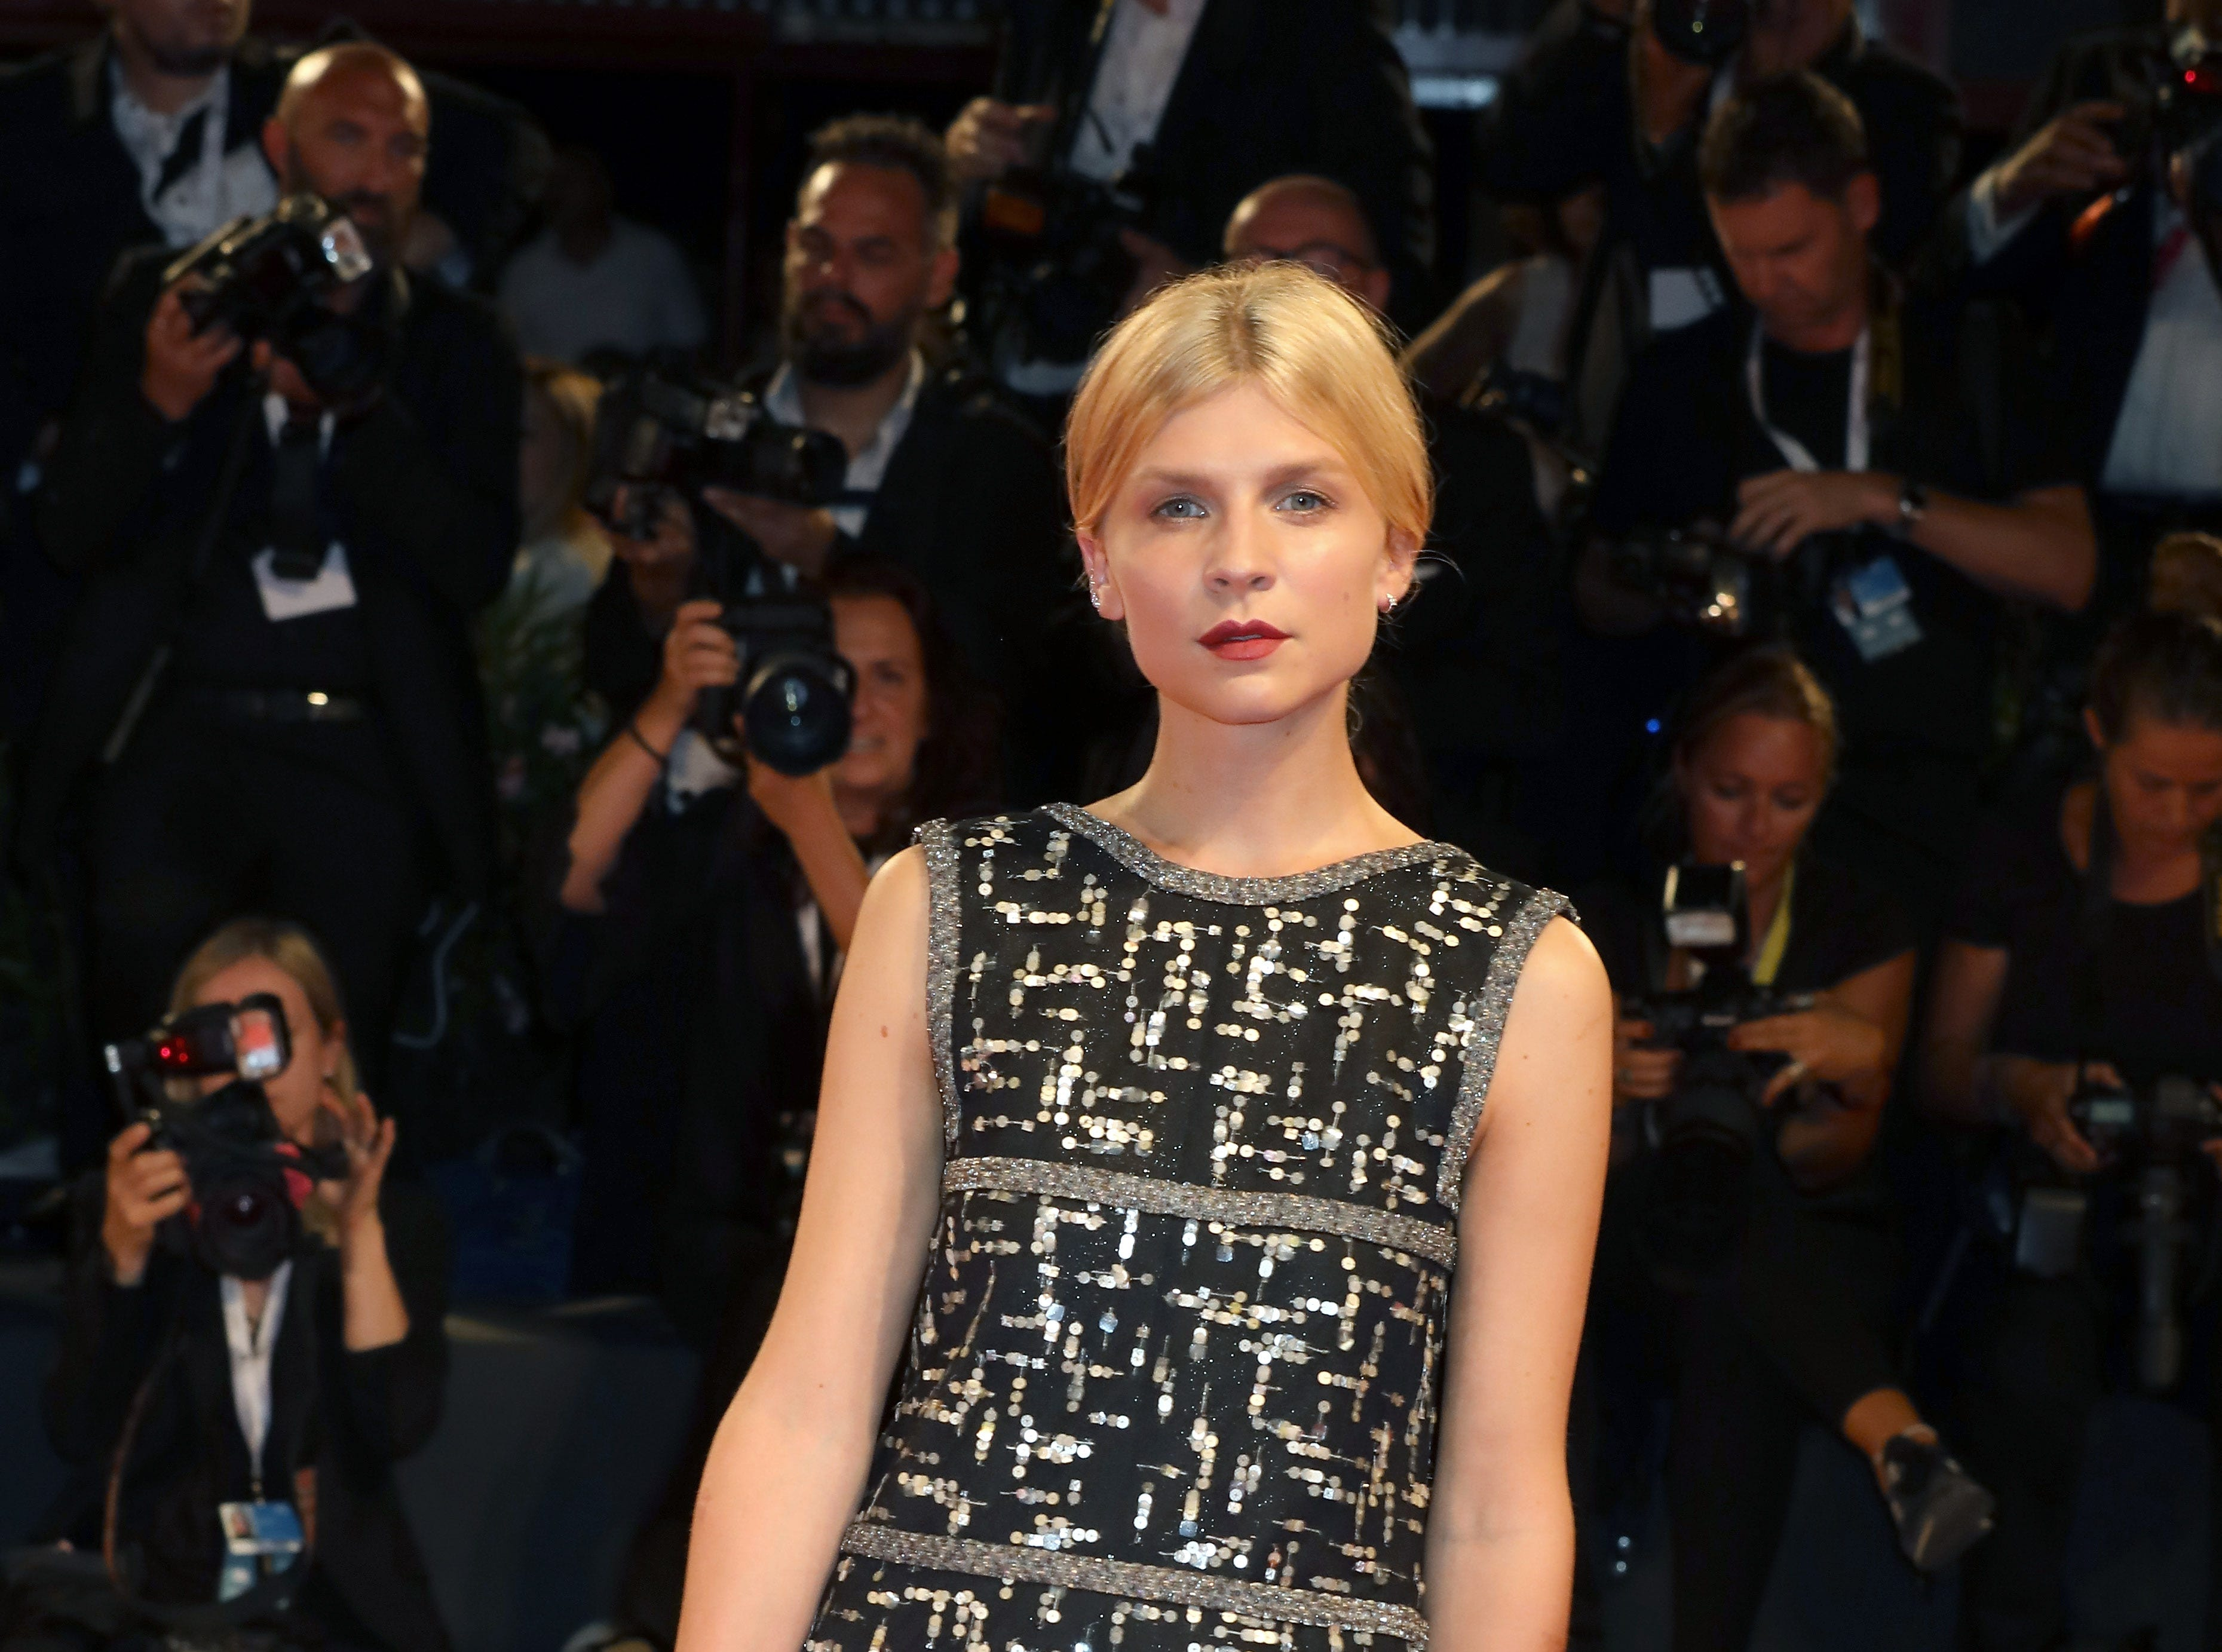 Clemence Poesy walks the red carpet ahead of the 'The Favourite' screening during the 75th Venice Film Festival at Sala Grande on August 30, 2018 in Venice, Italy.